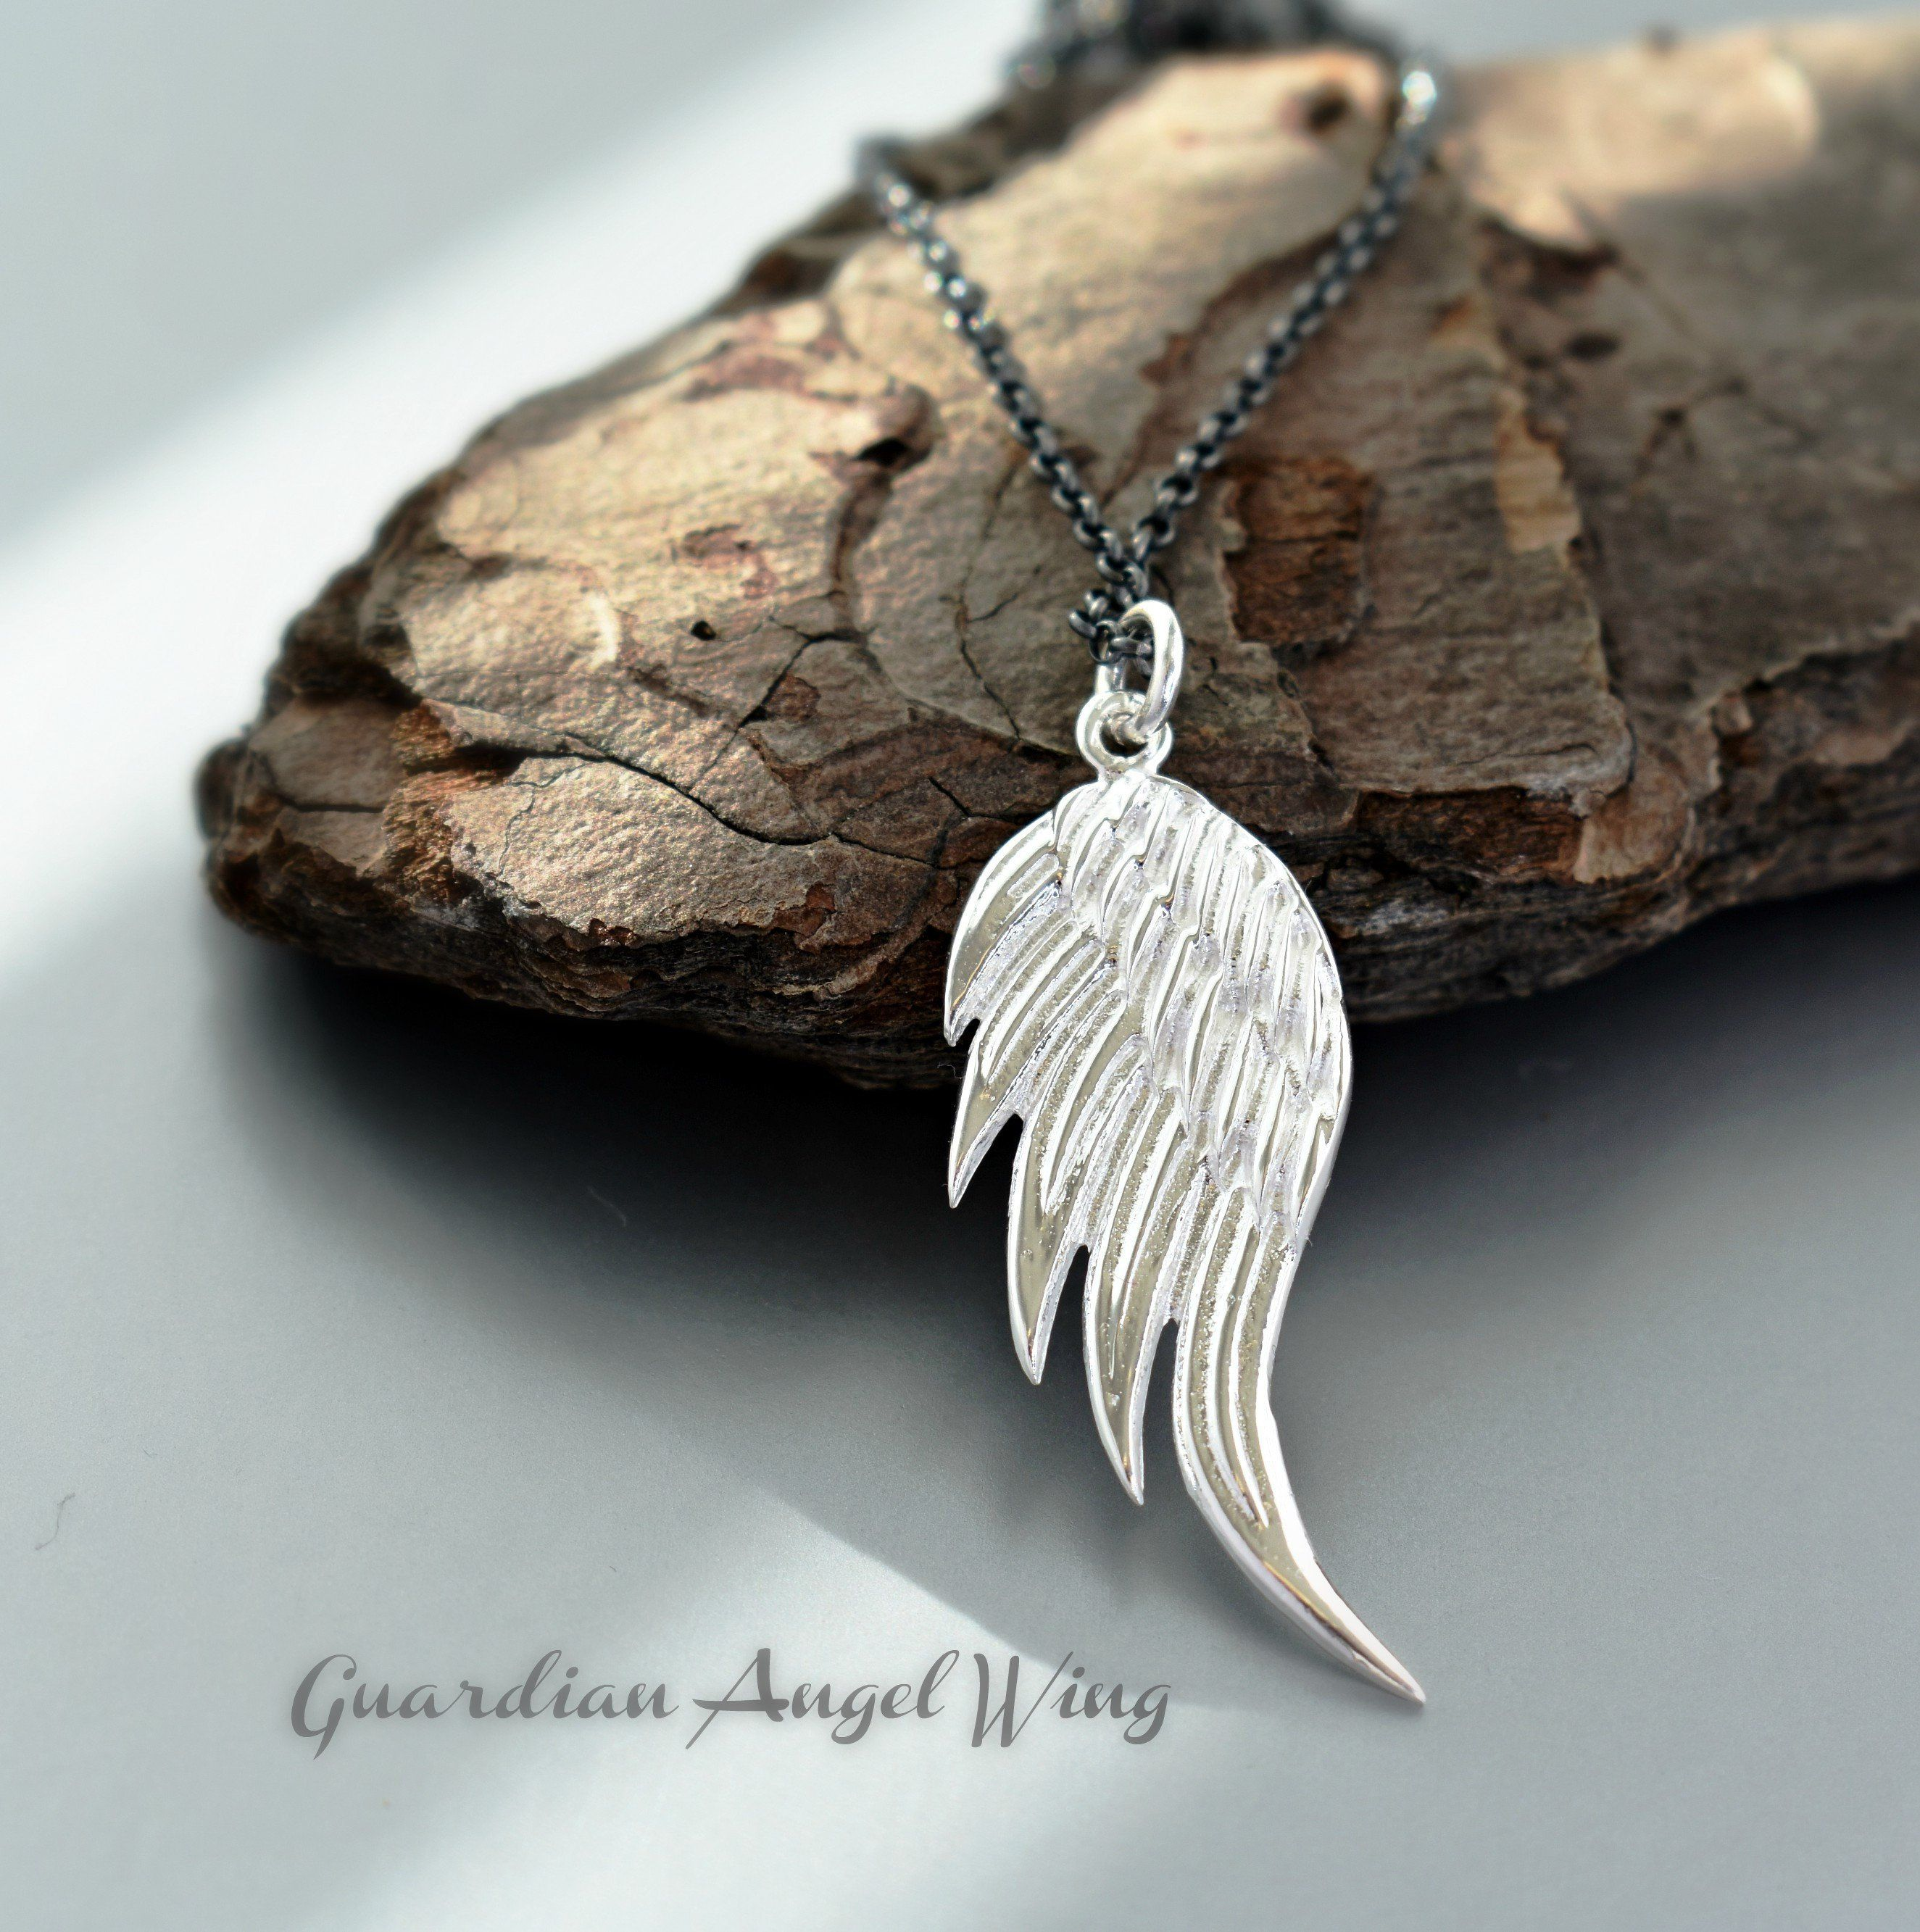 Silver Guardian Angel Wings Necklace Feathers Charms Spiritual Jewellery